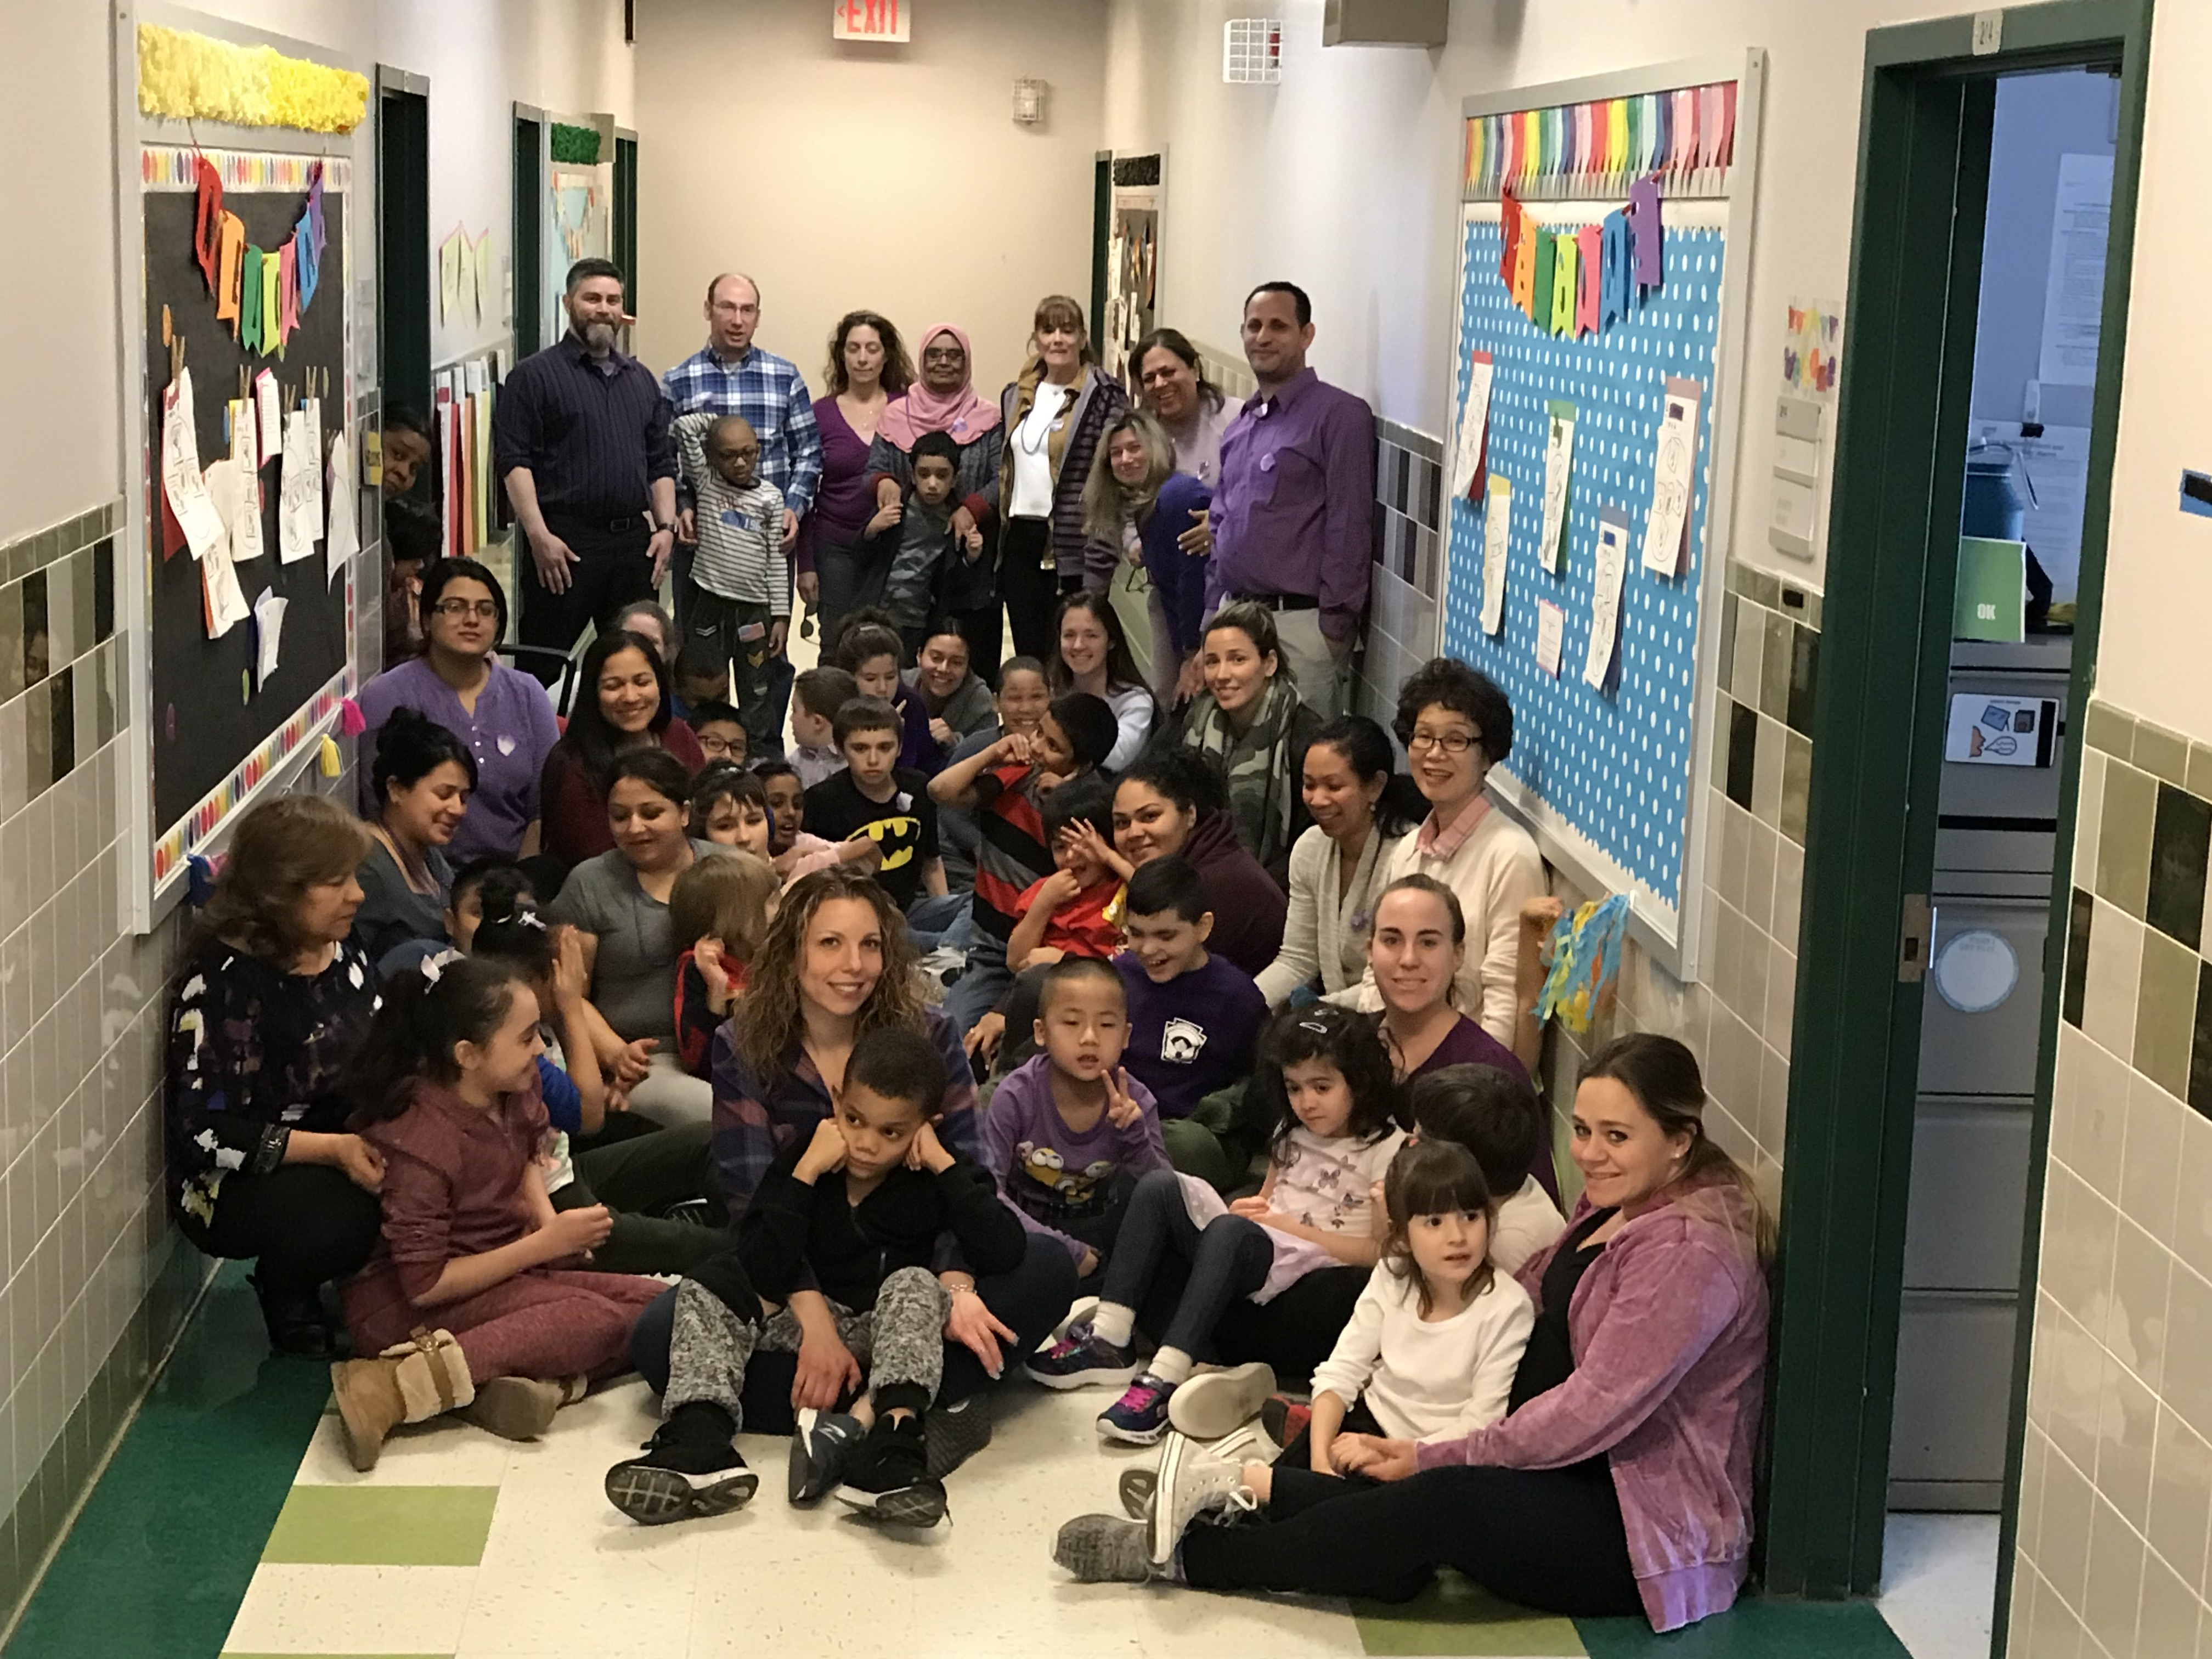 The P255q @ PS128 Crew celebrates Purple Day for Epilepsy Awareness!